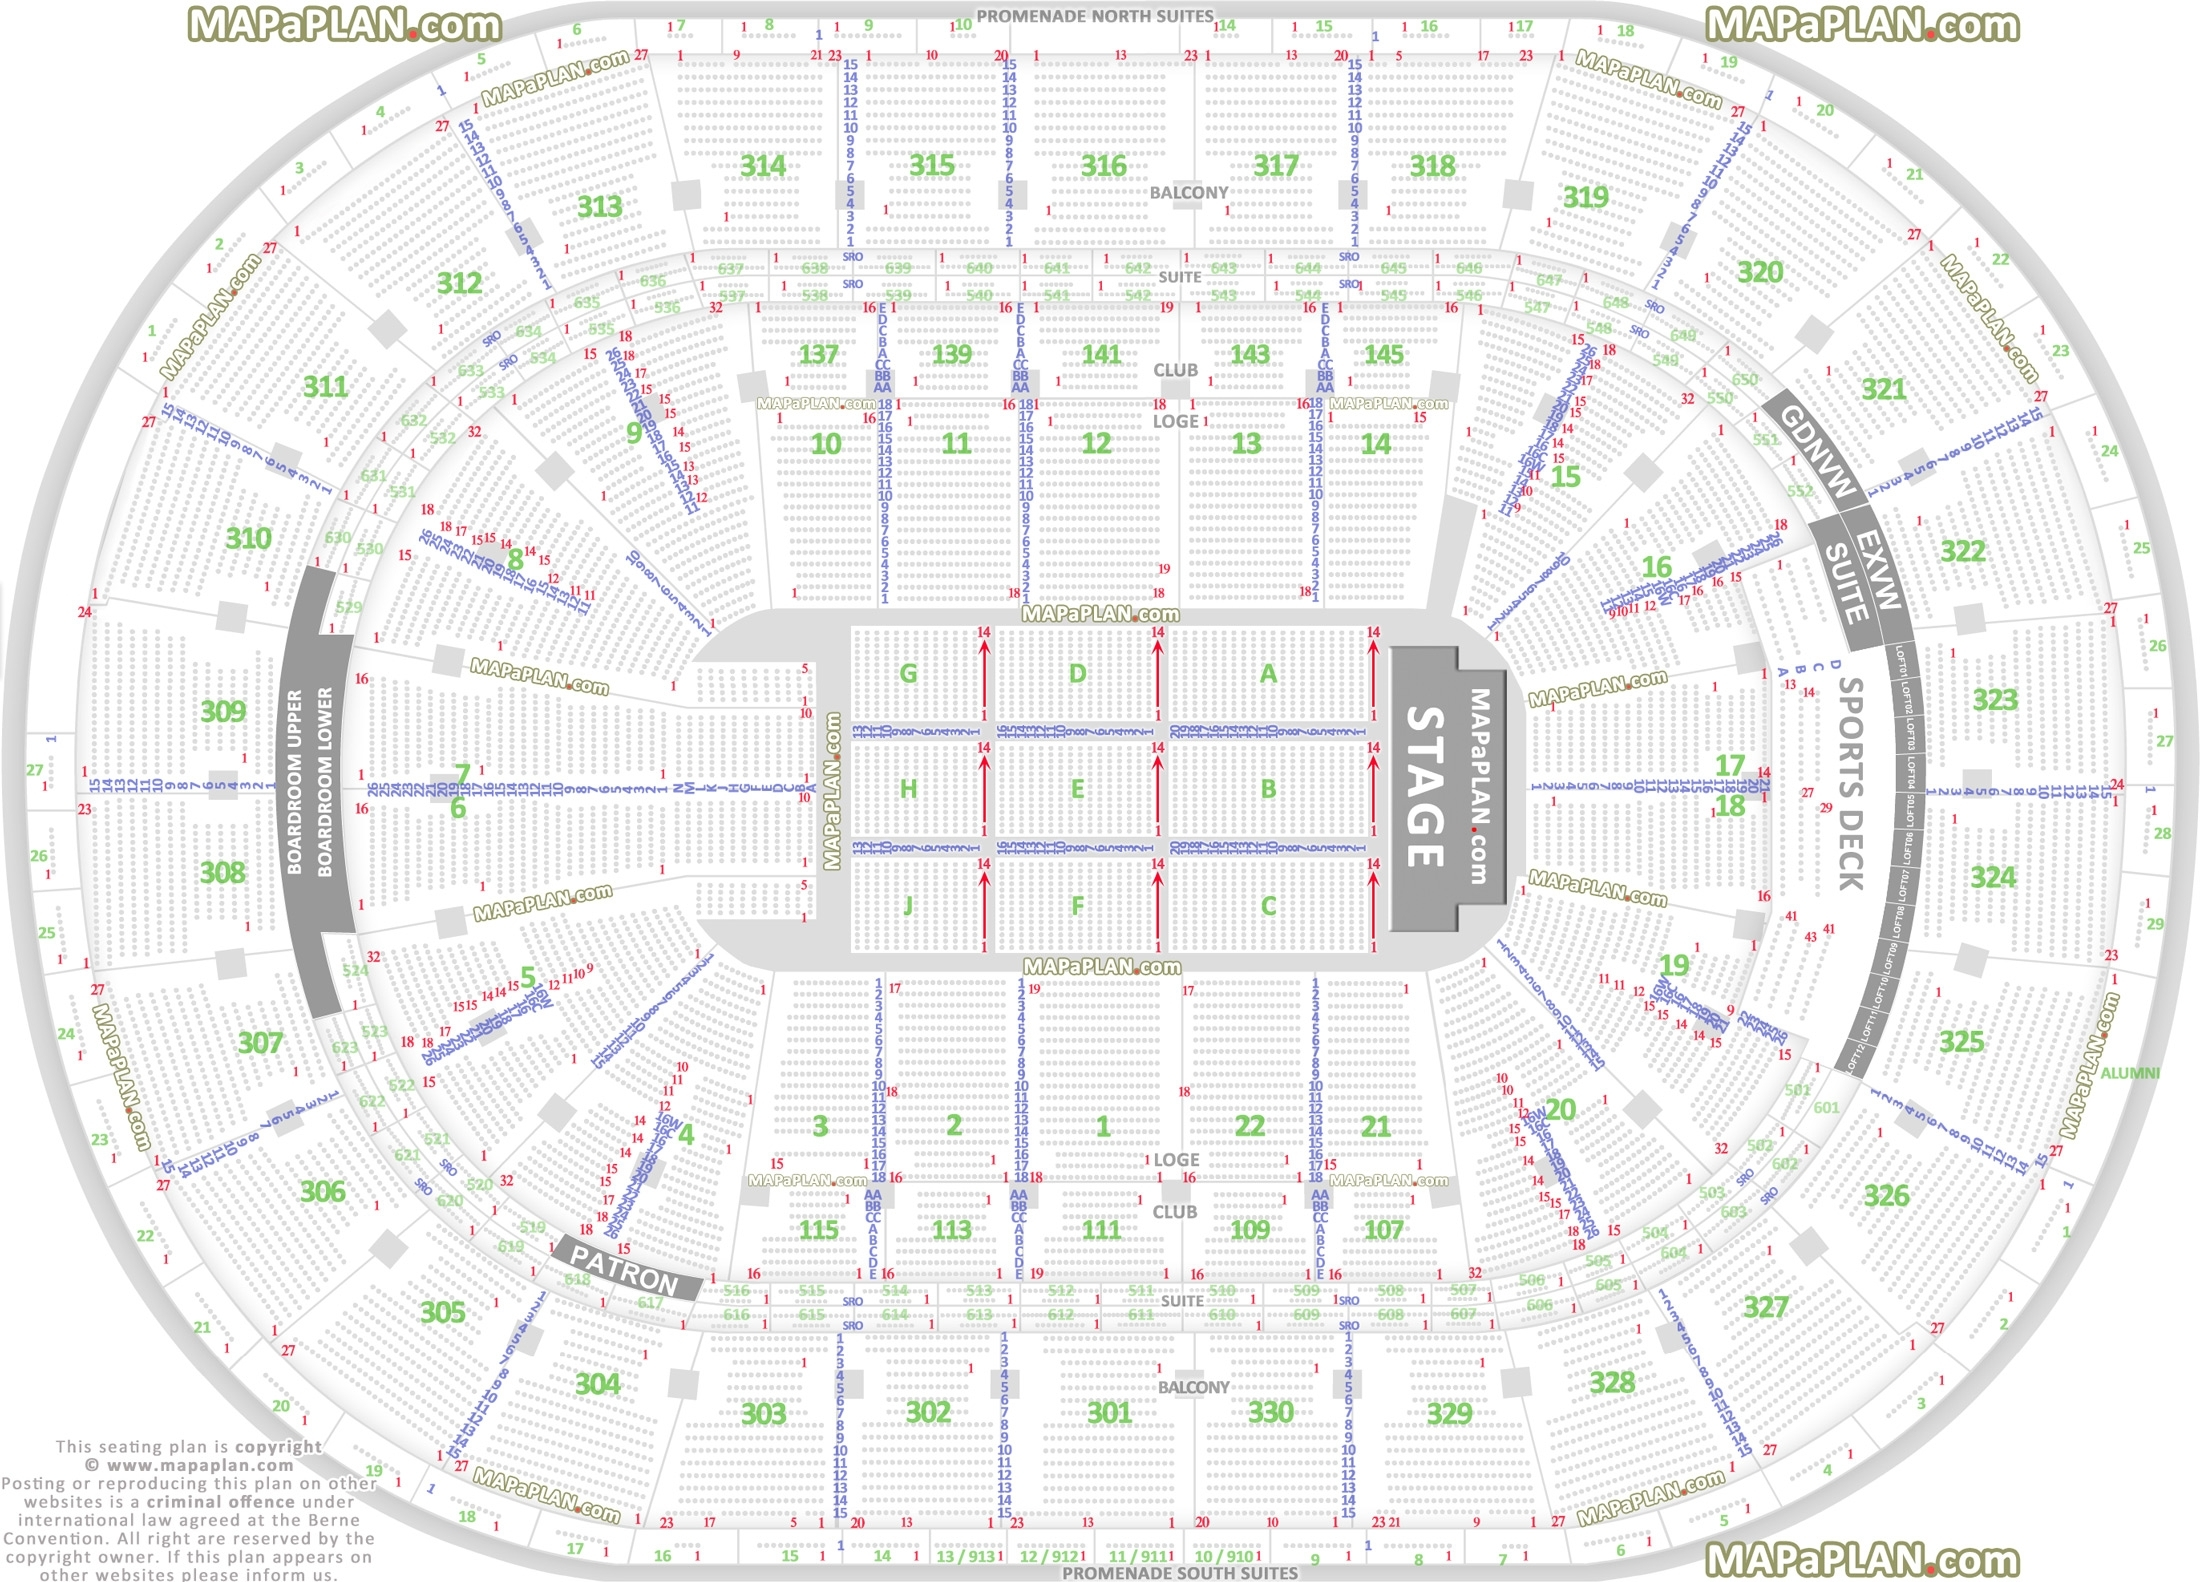 Boston Td Garden Seat Numbers Detailed Seating Plan - Mapaplan regarding Verizon Center Seating Chart Pdf